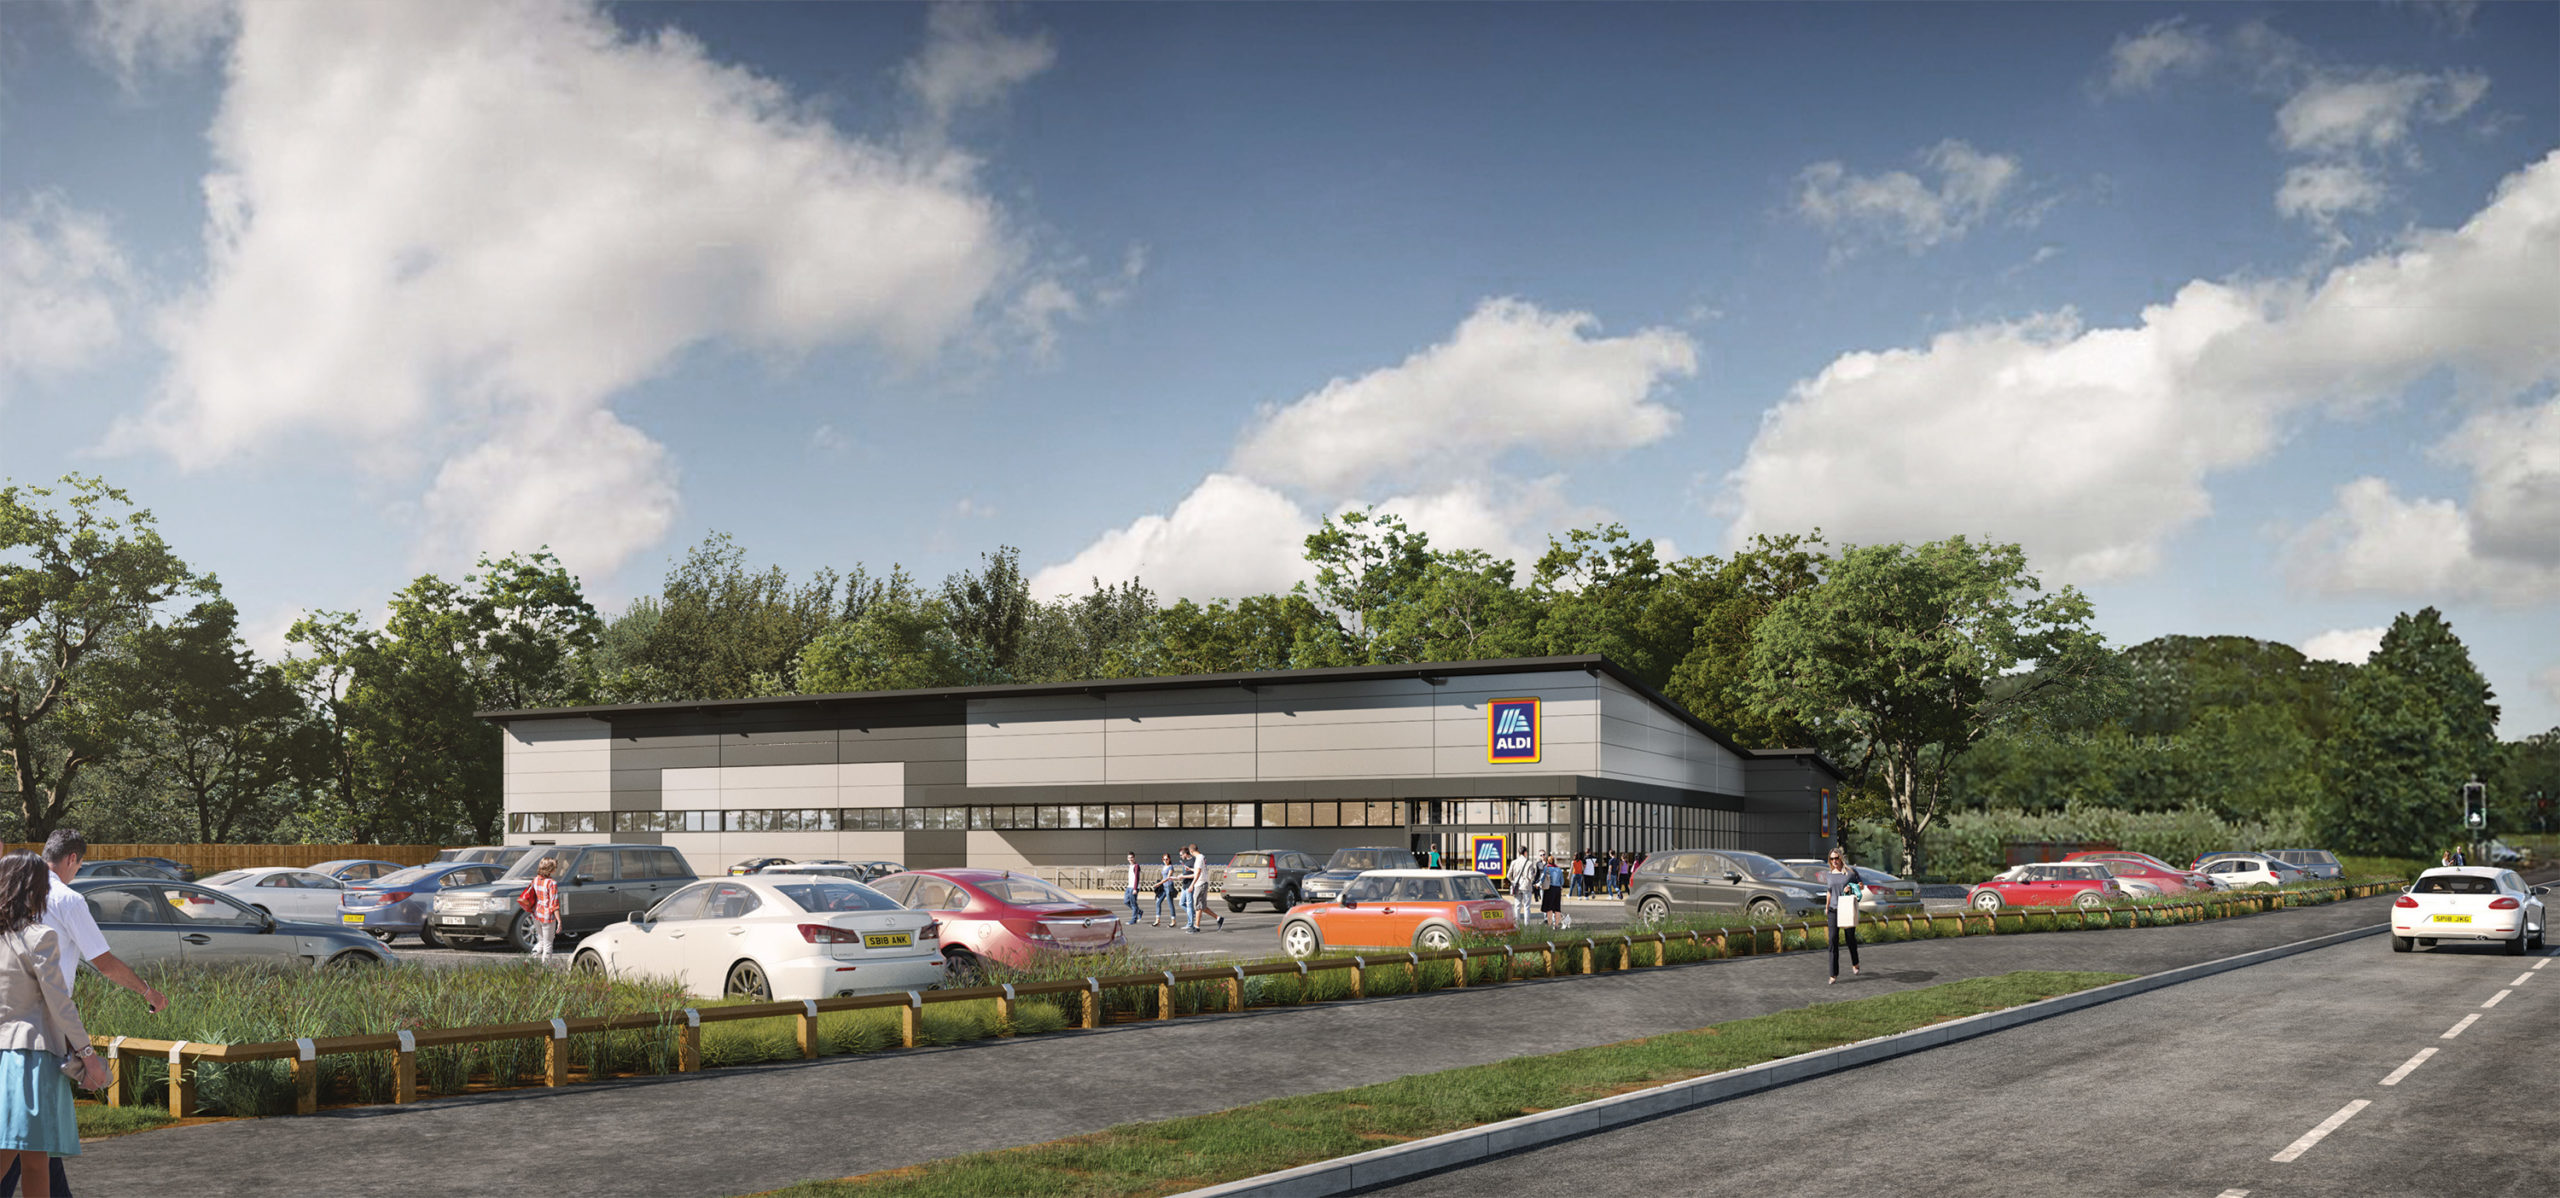 New Aldi Store for Maghull CGI